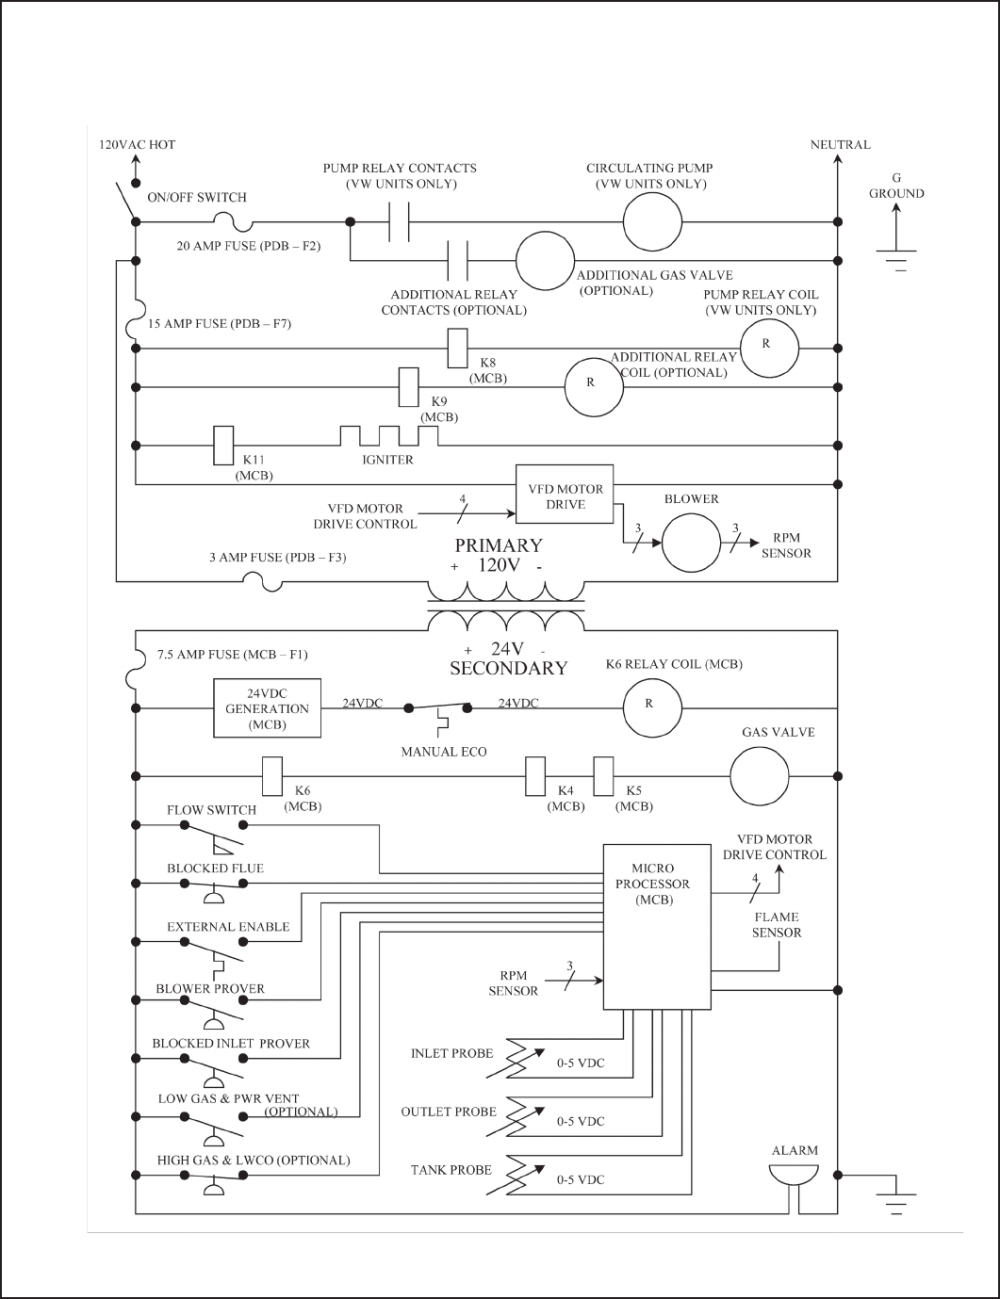 medium resolution of russell refrigeration wiring diagrams page 32 of town appliance a o smith boiler vb